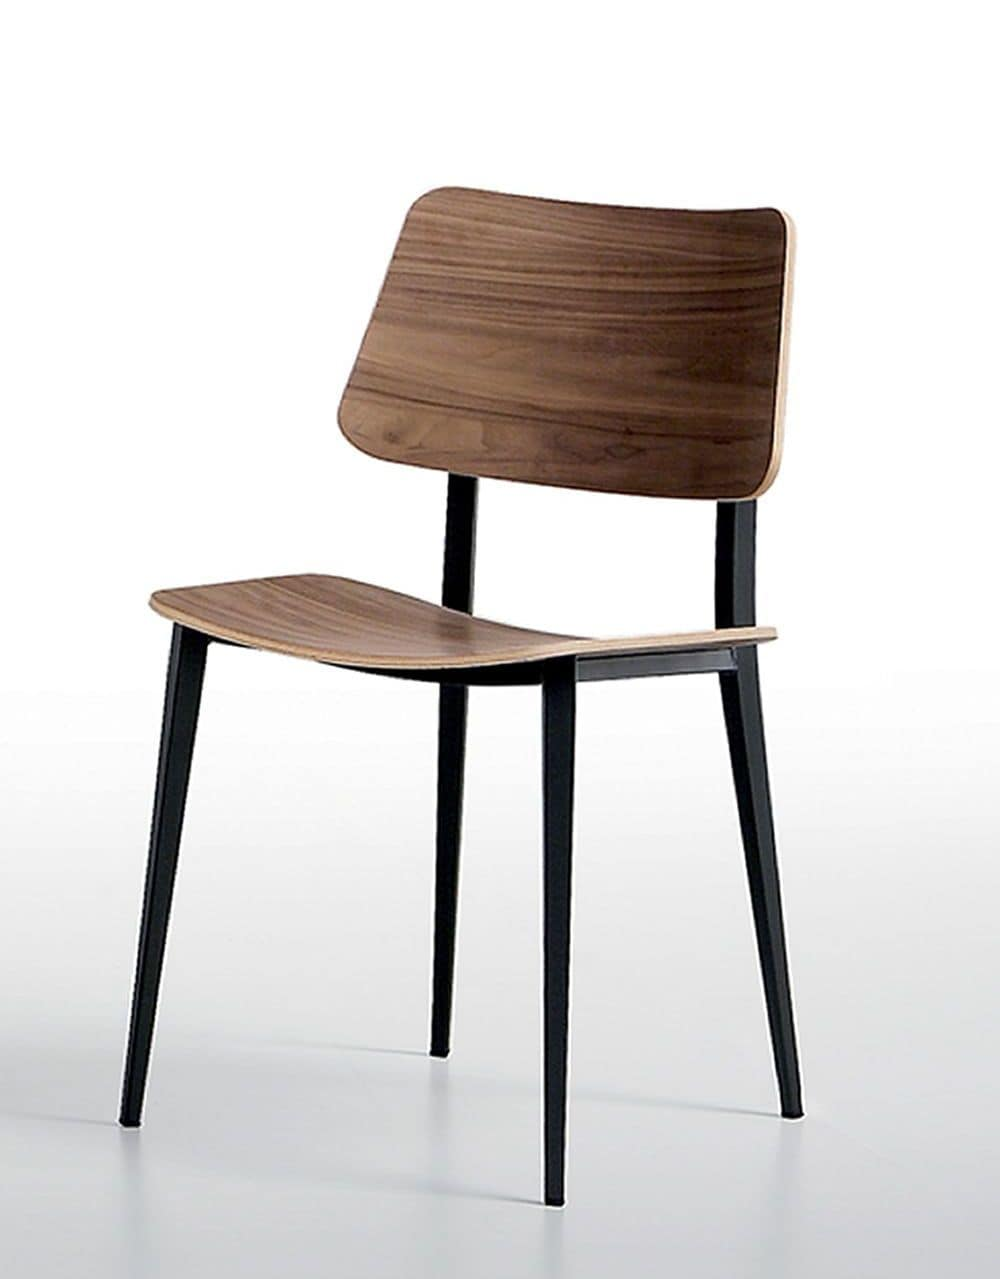 Joe Chair Made Of Metal And Wood For Kitchens Living